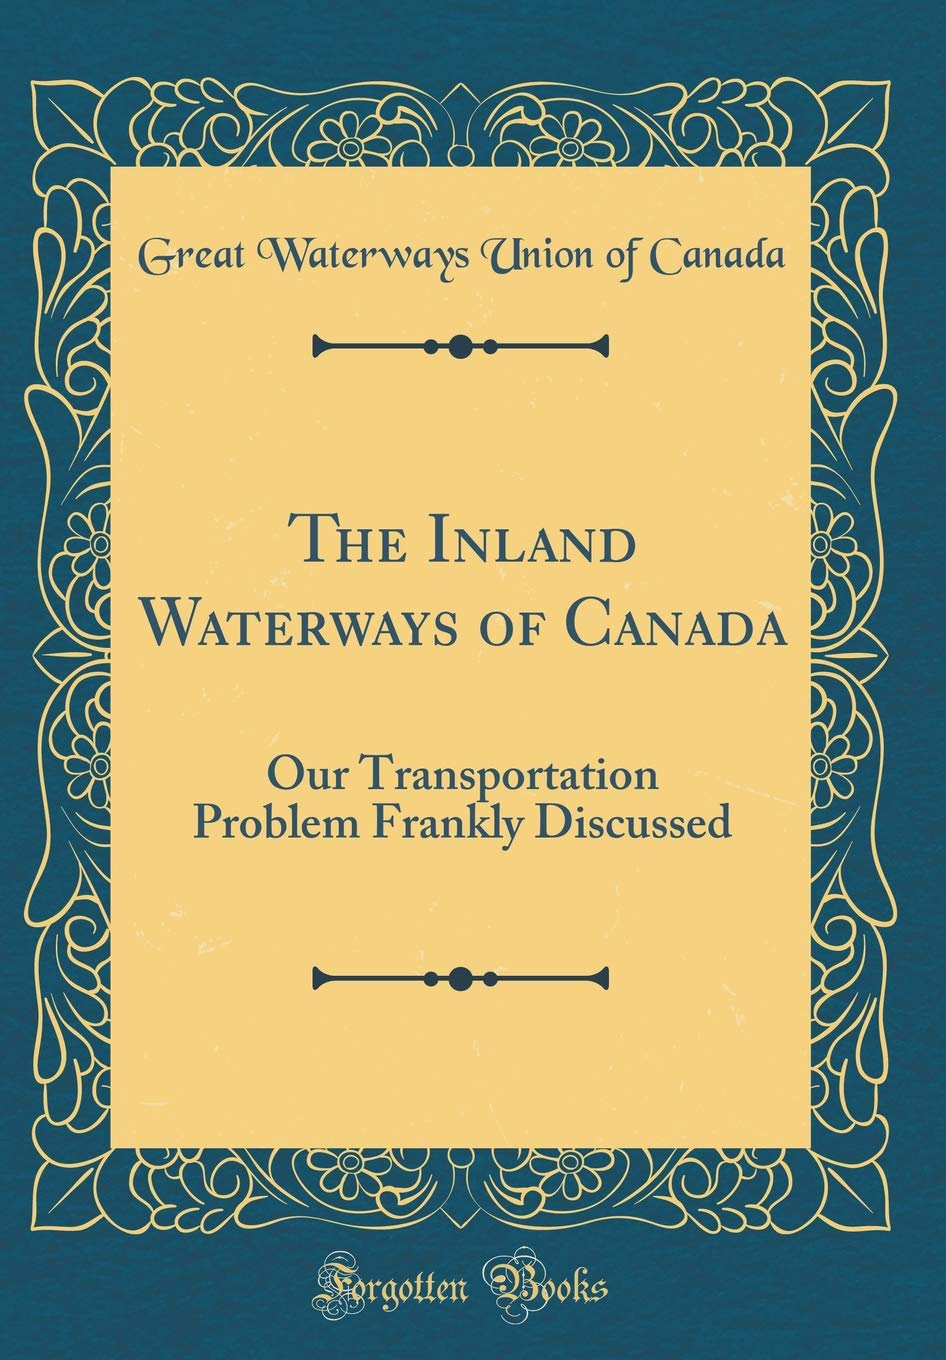 North American Waterways Lakes Islands French Canada 9 2